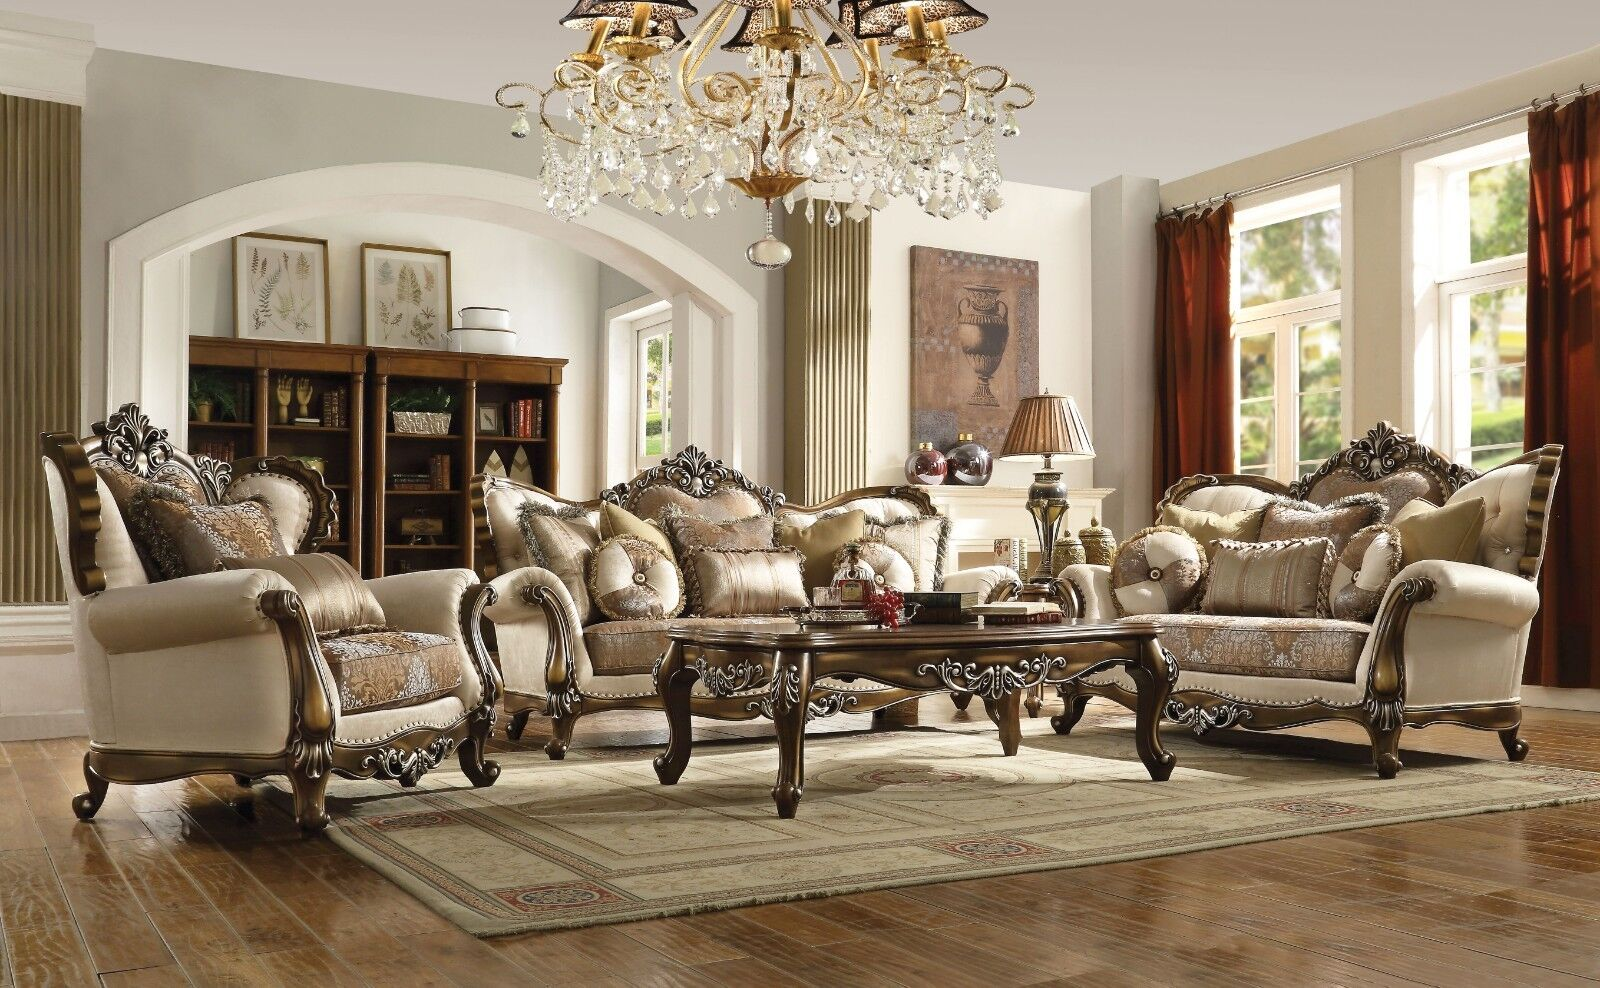 Opulent Traditional Luxury Living Room 3pc Sofa Set Carved Wood Trim Pillows Ebay